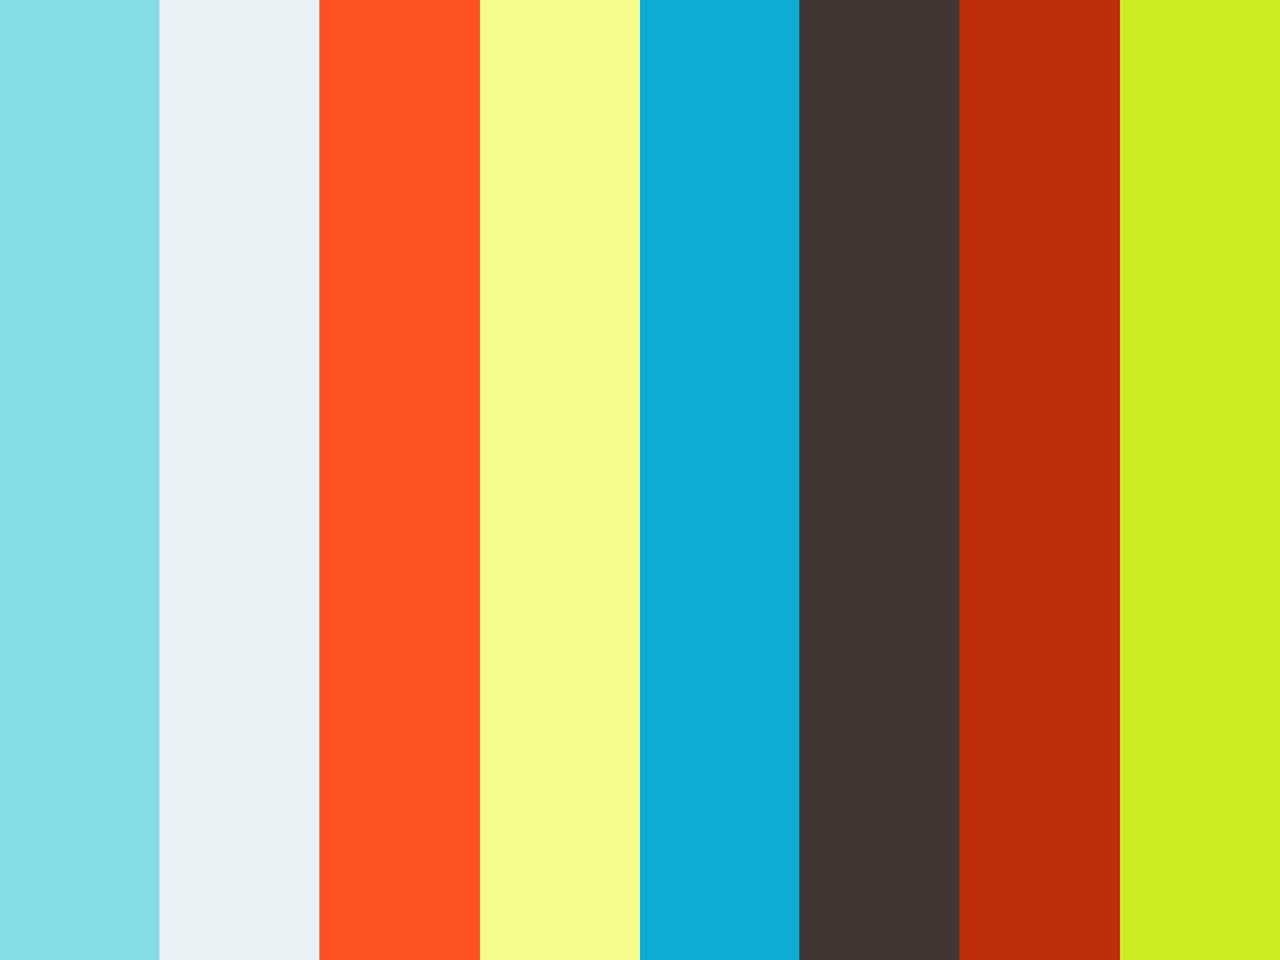 Papercraft Petal Envelope Project